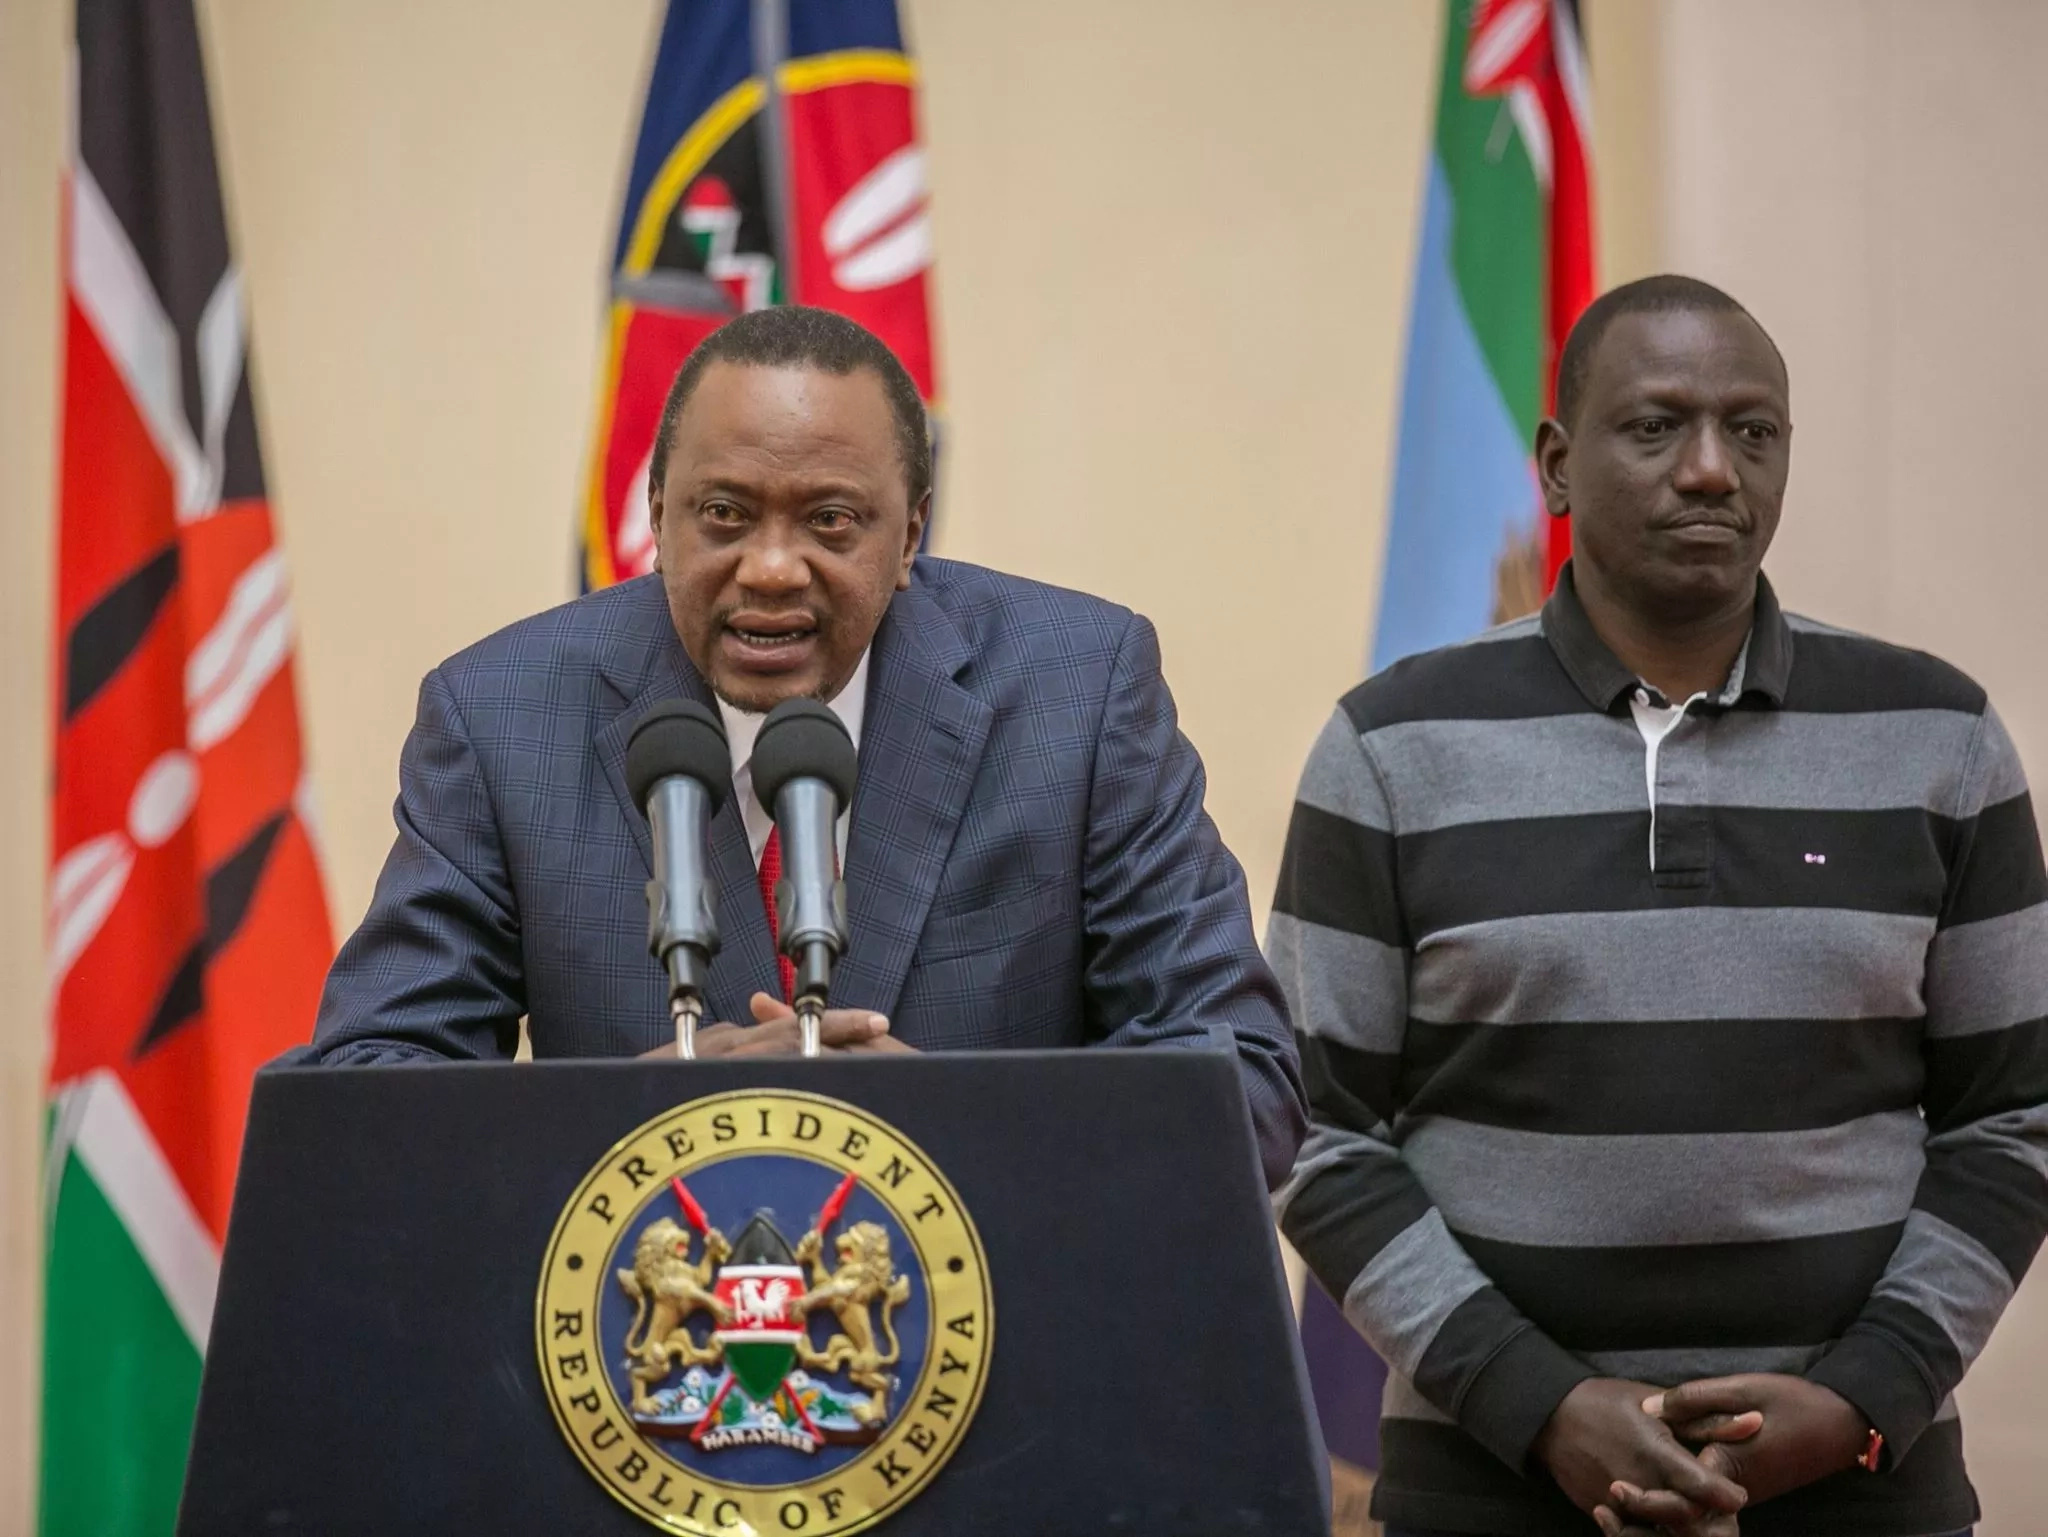 Kenyatta speaks out against court after election overturned